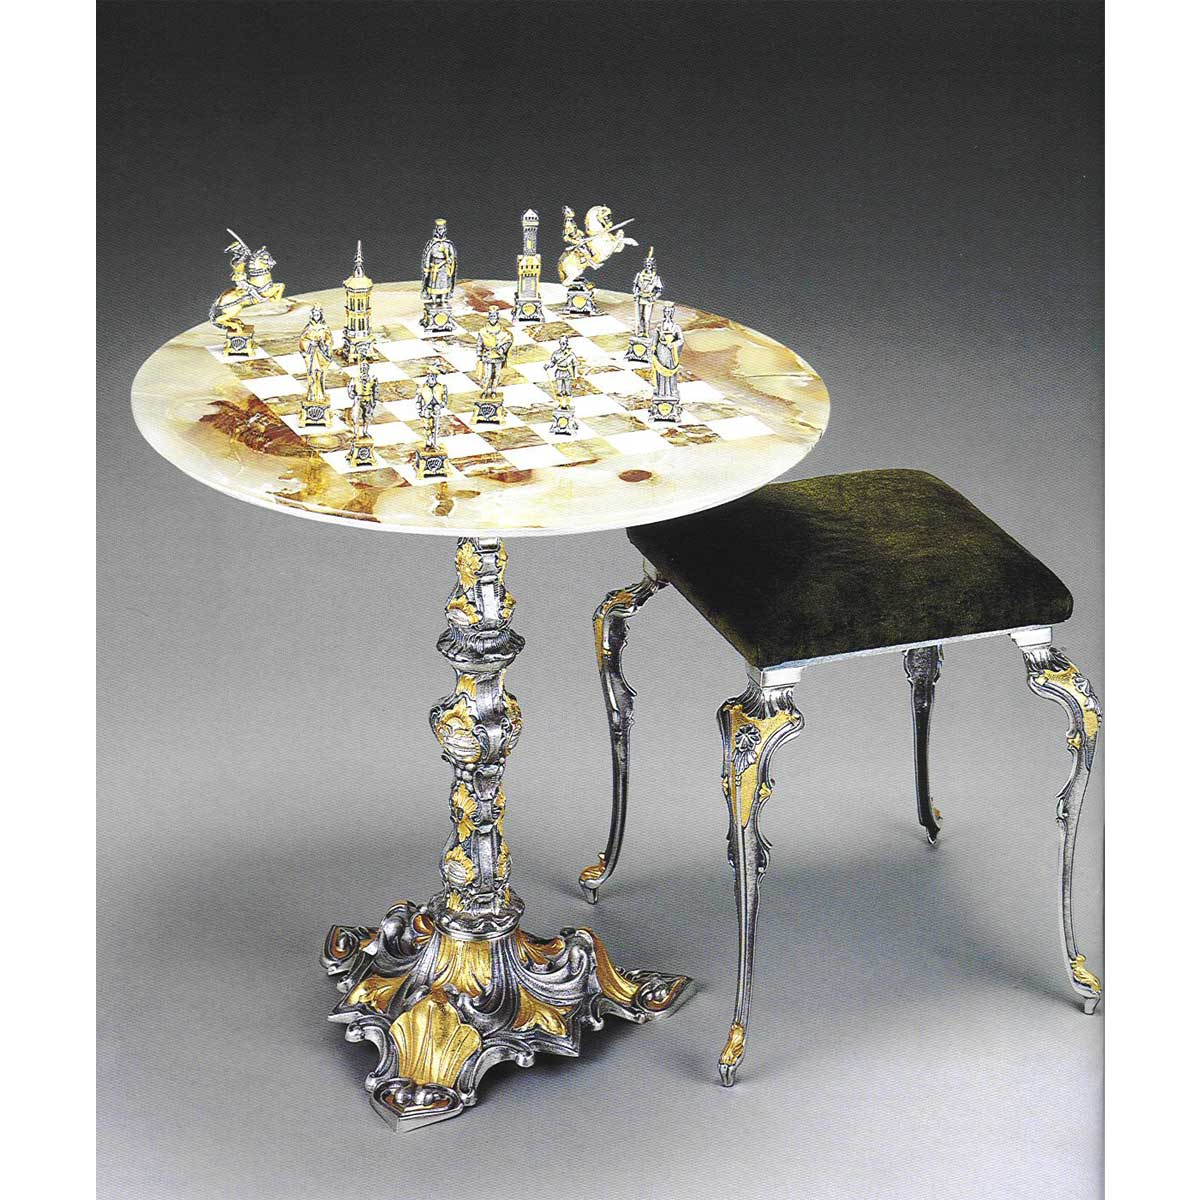 Gold and Silver Round Onyx Chess Table and Stool